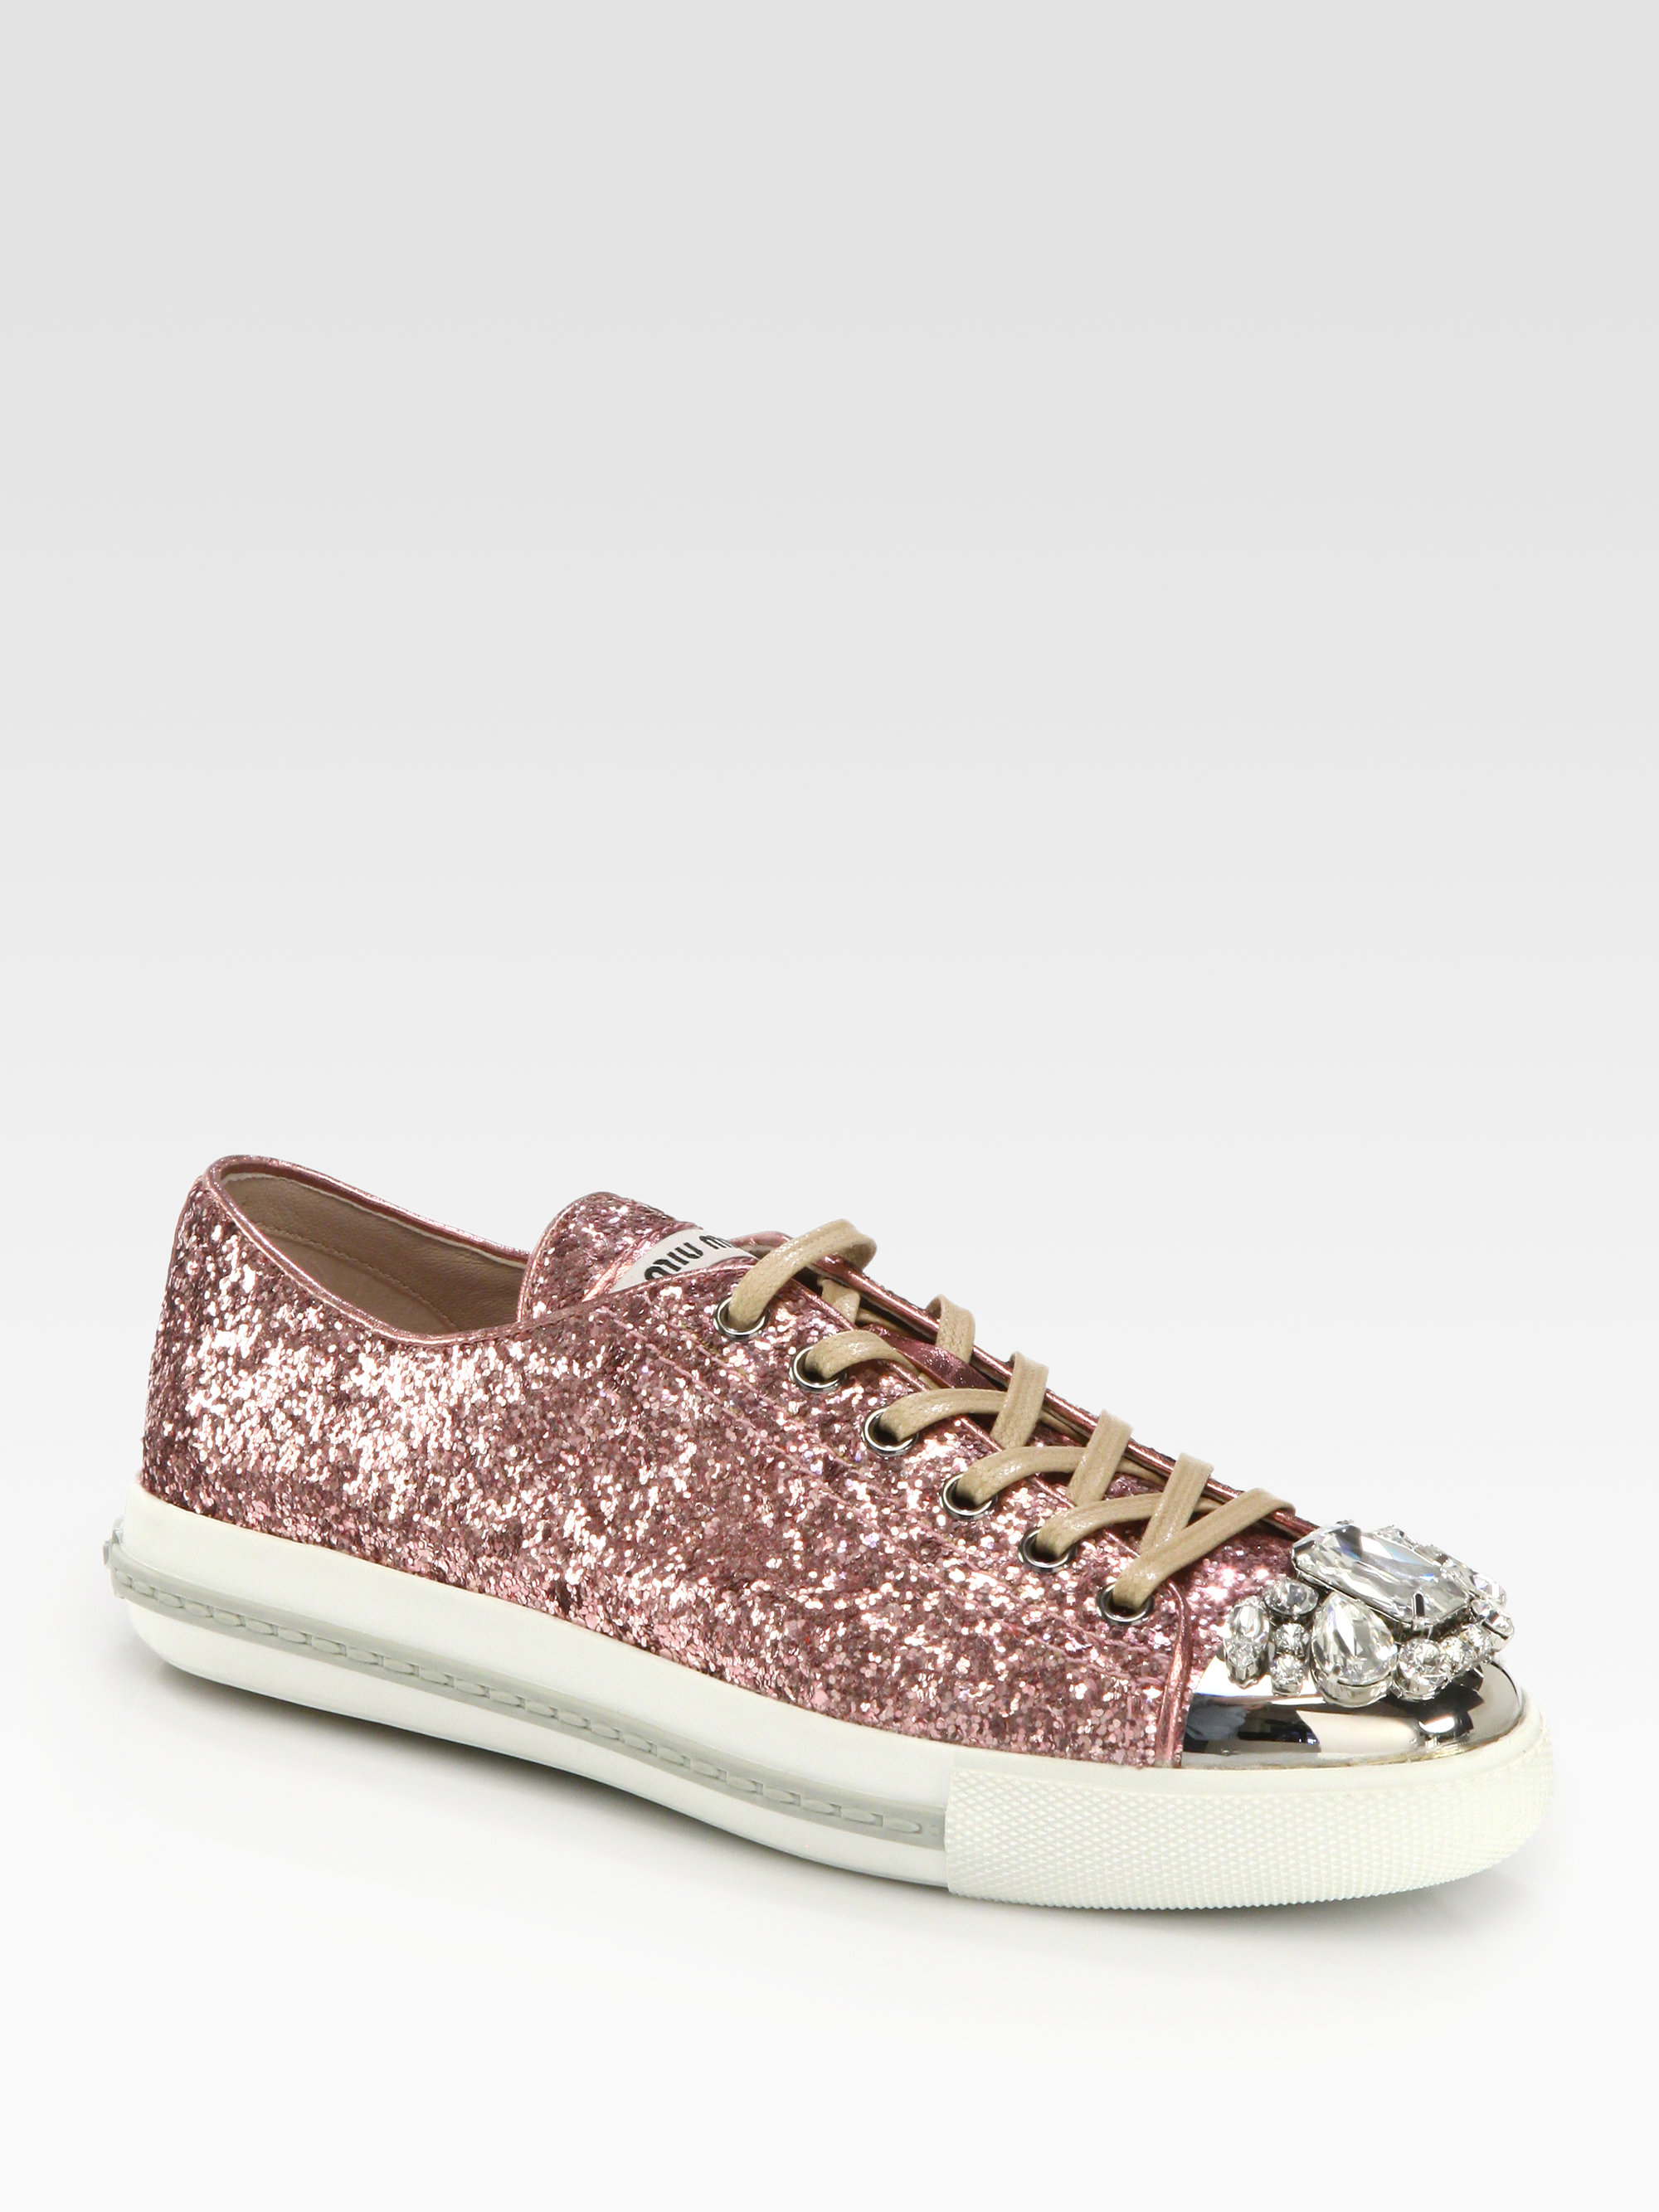 glittery stripes lace-up sneakers - White Miu Miu